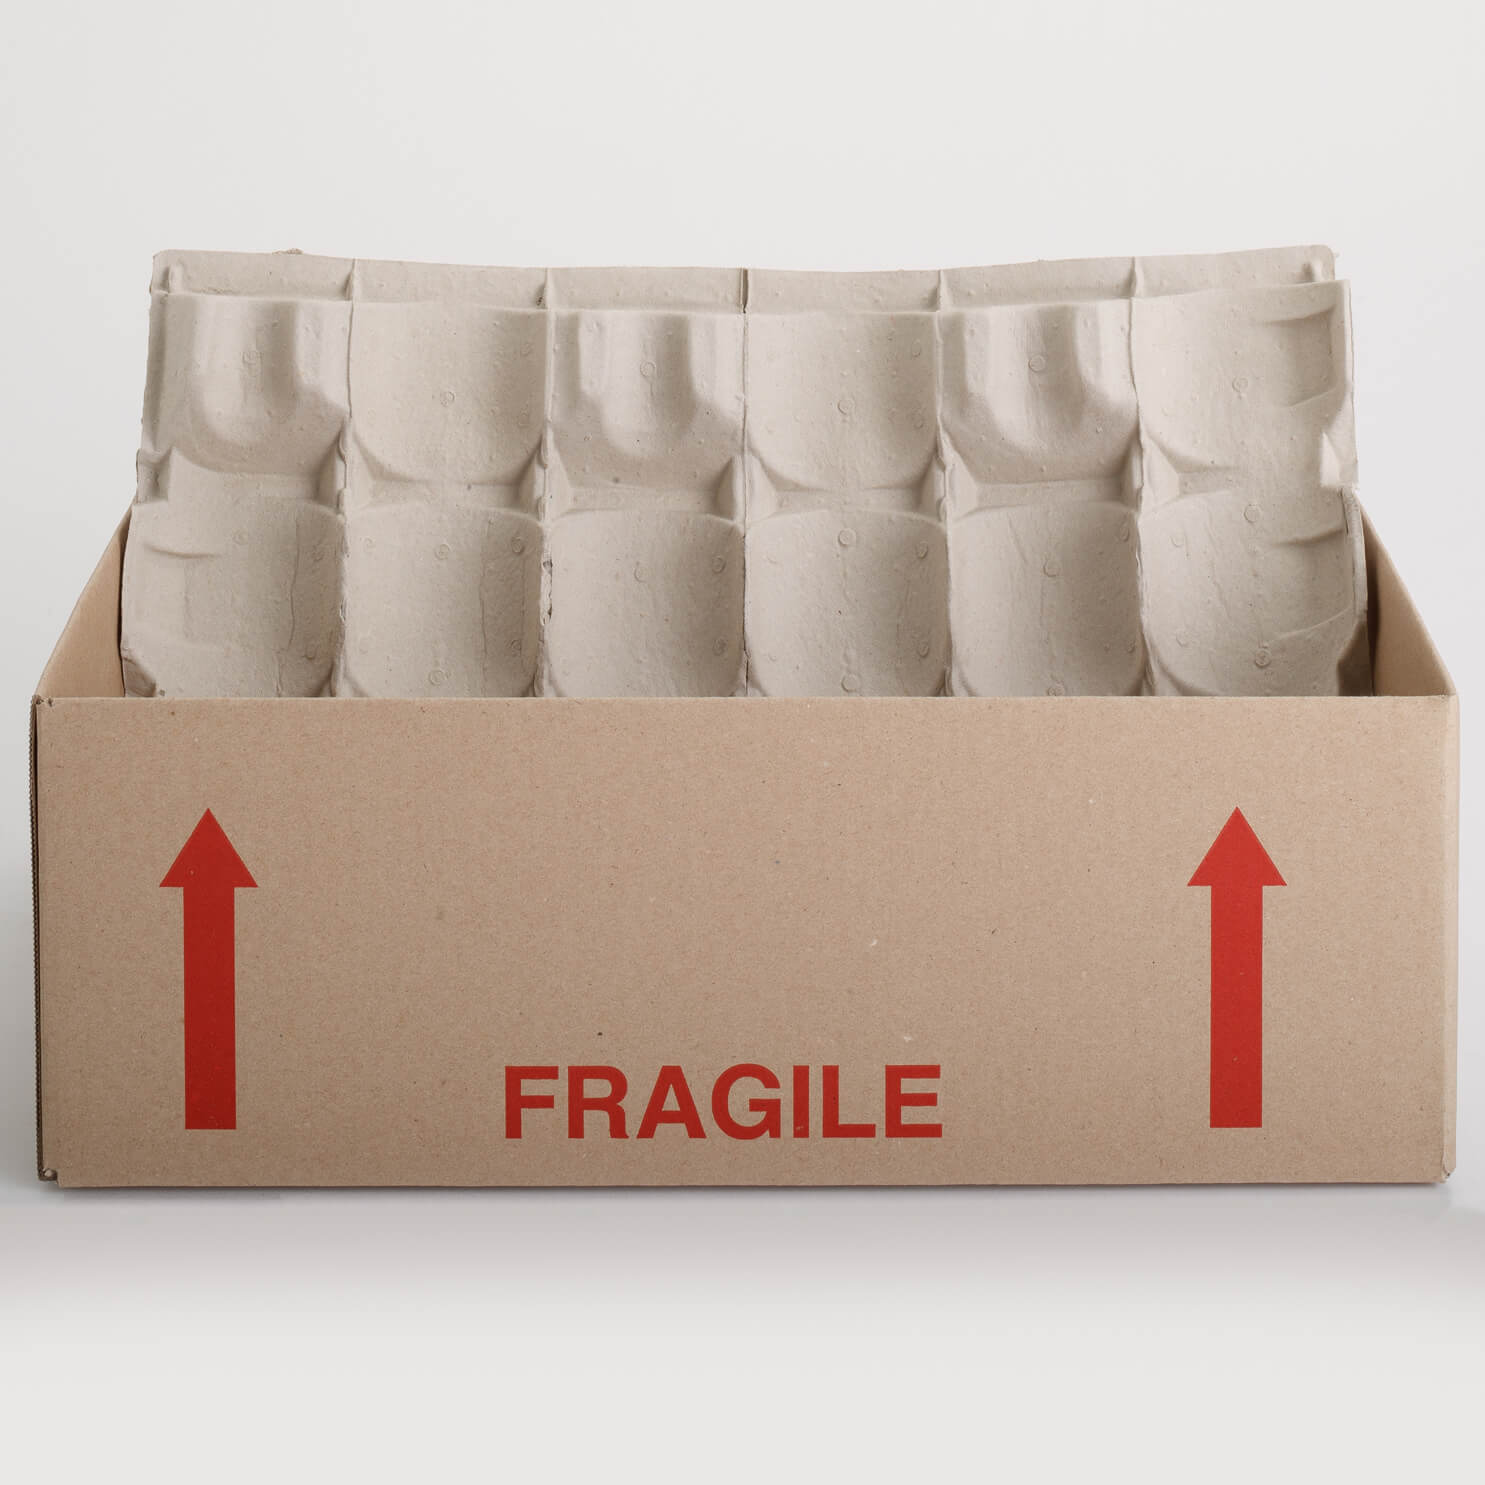 Free Cardboard Boxes Melbourne Storage Supplies Shop Packing Boxes Boxes For Packing Fort